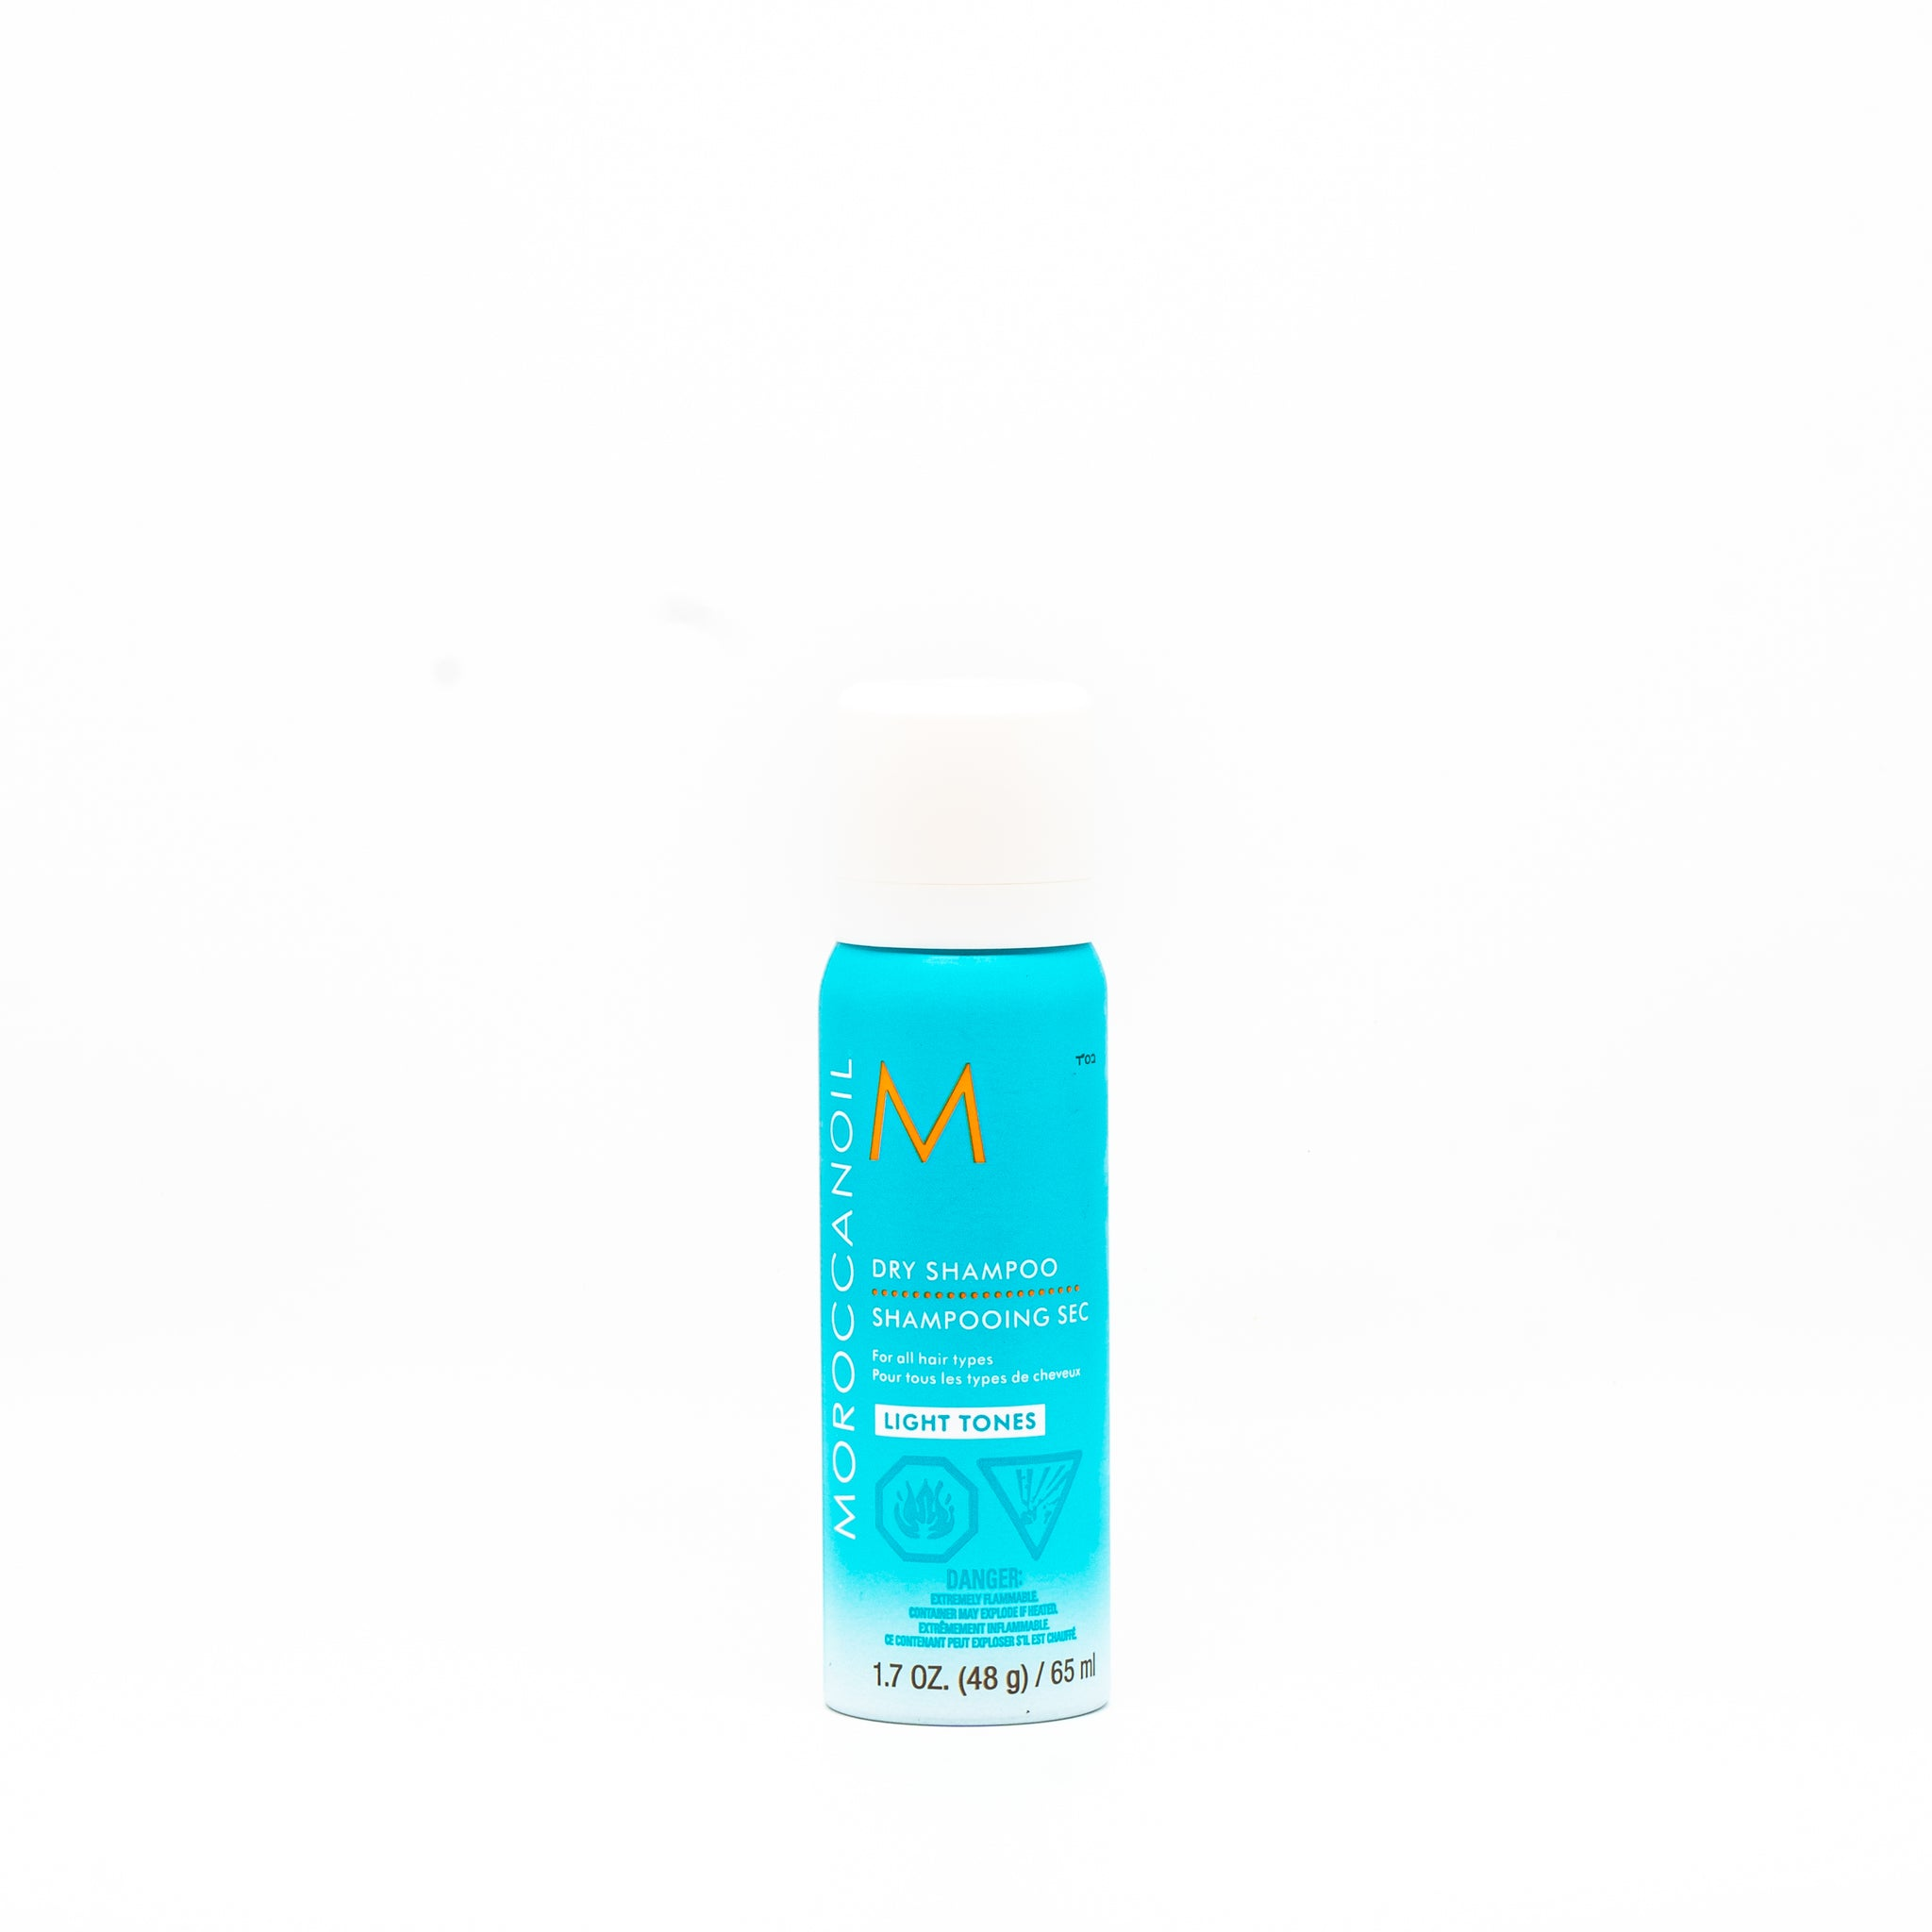 Moroccan Oil Dry Shampoo Light Tones 65ml